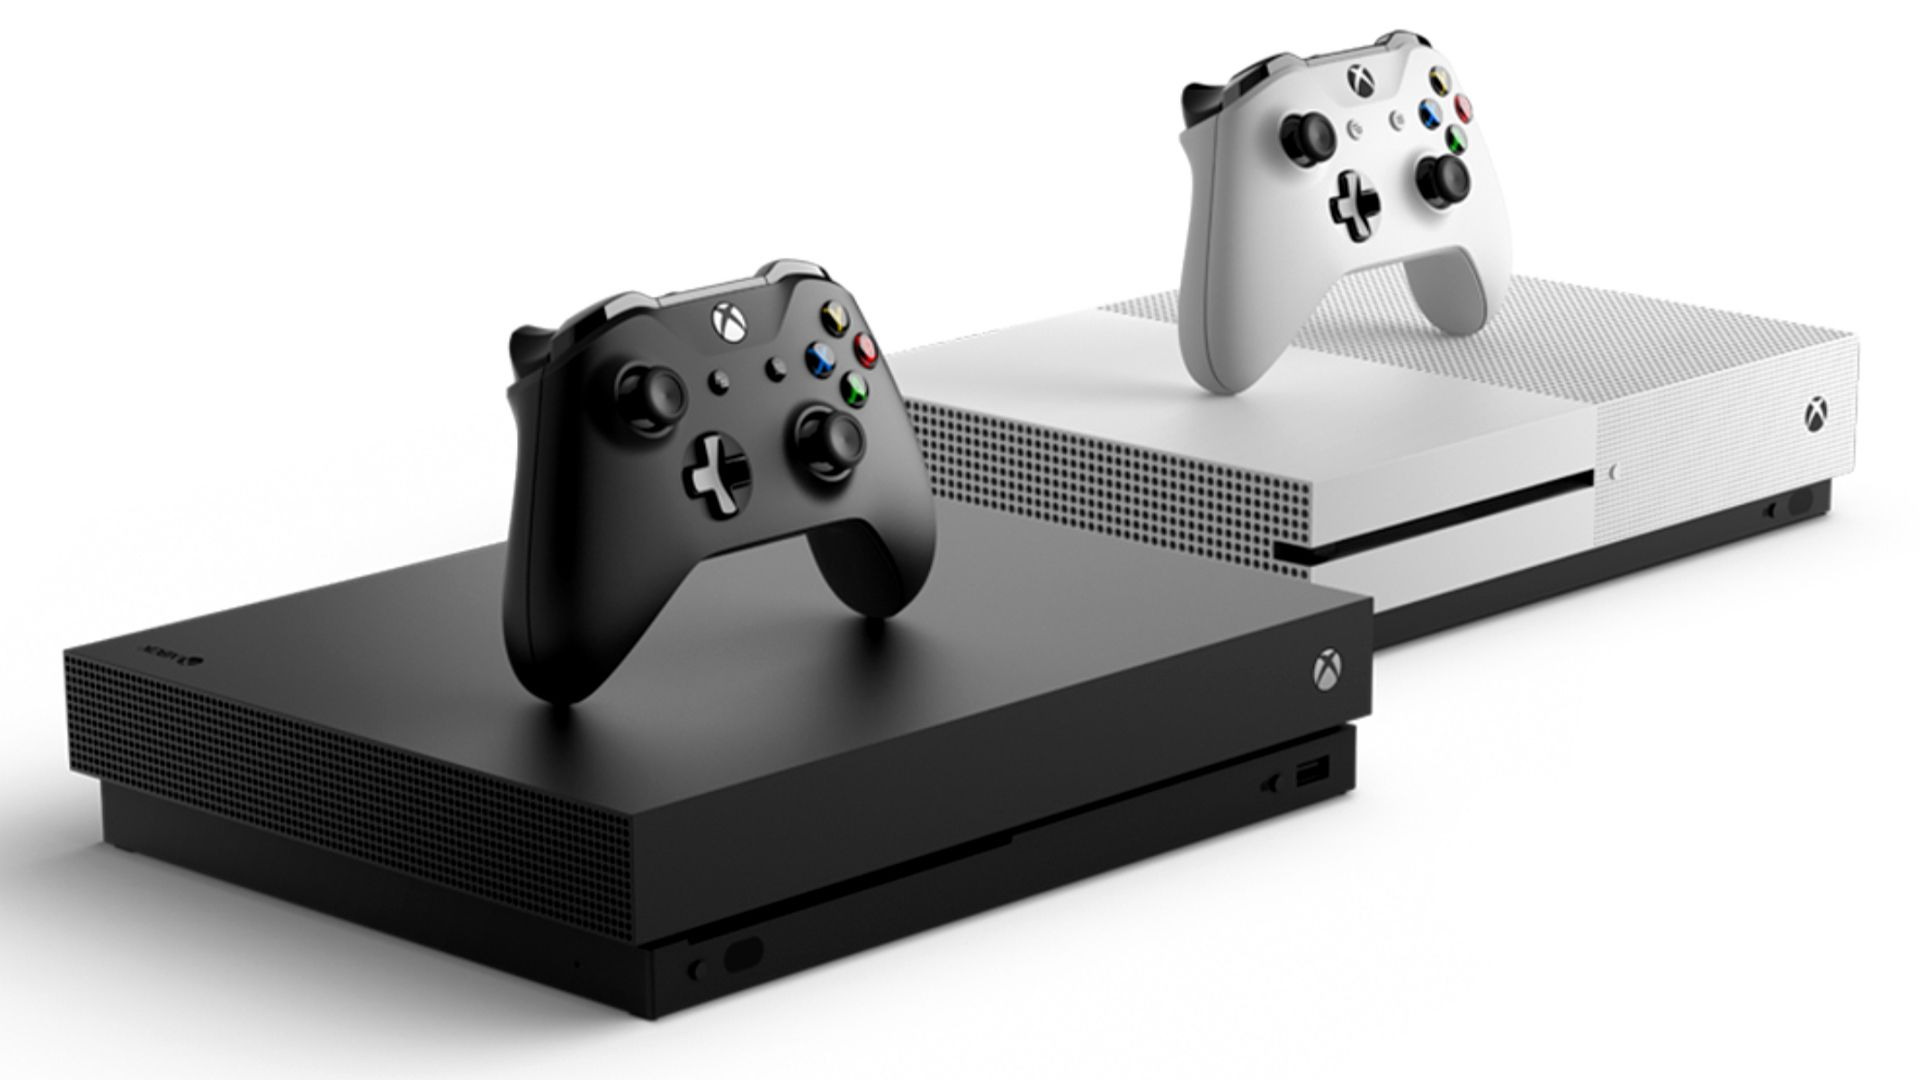 Xbox One X and Xbox One S consoles, Xbox Controllers, Xbox 1, XB1